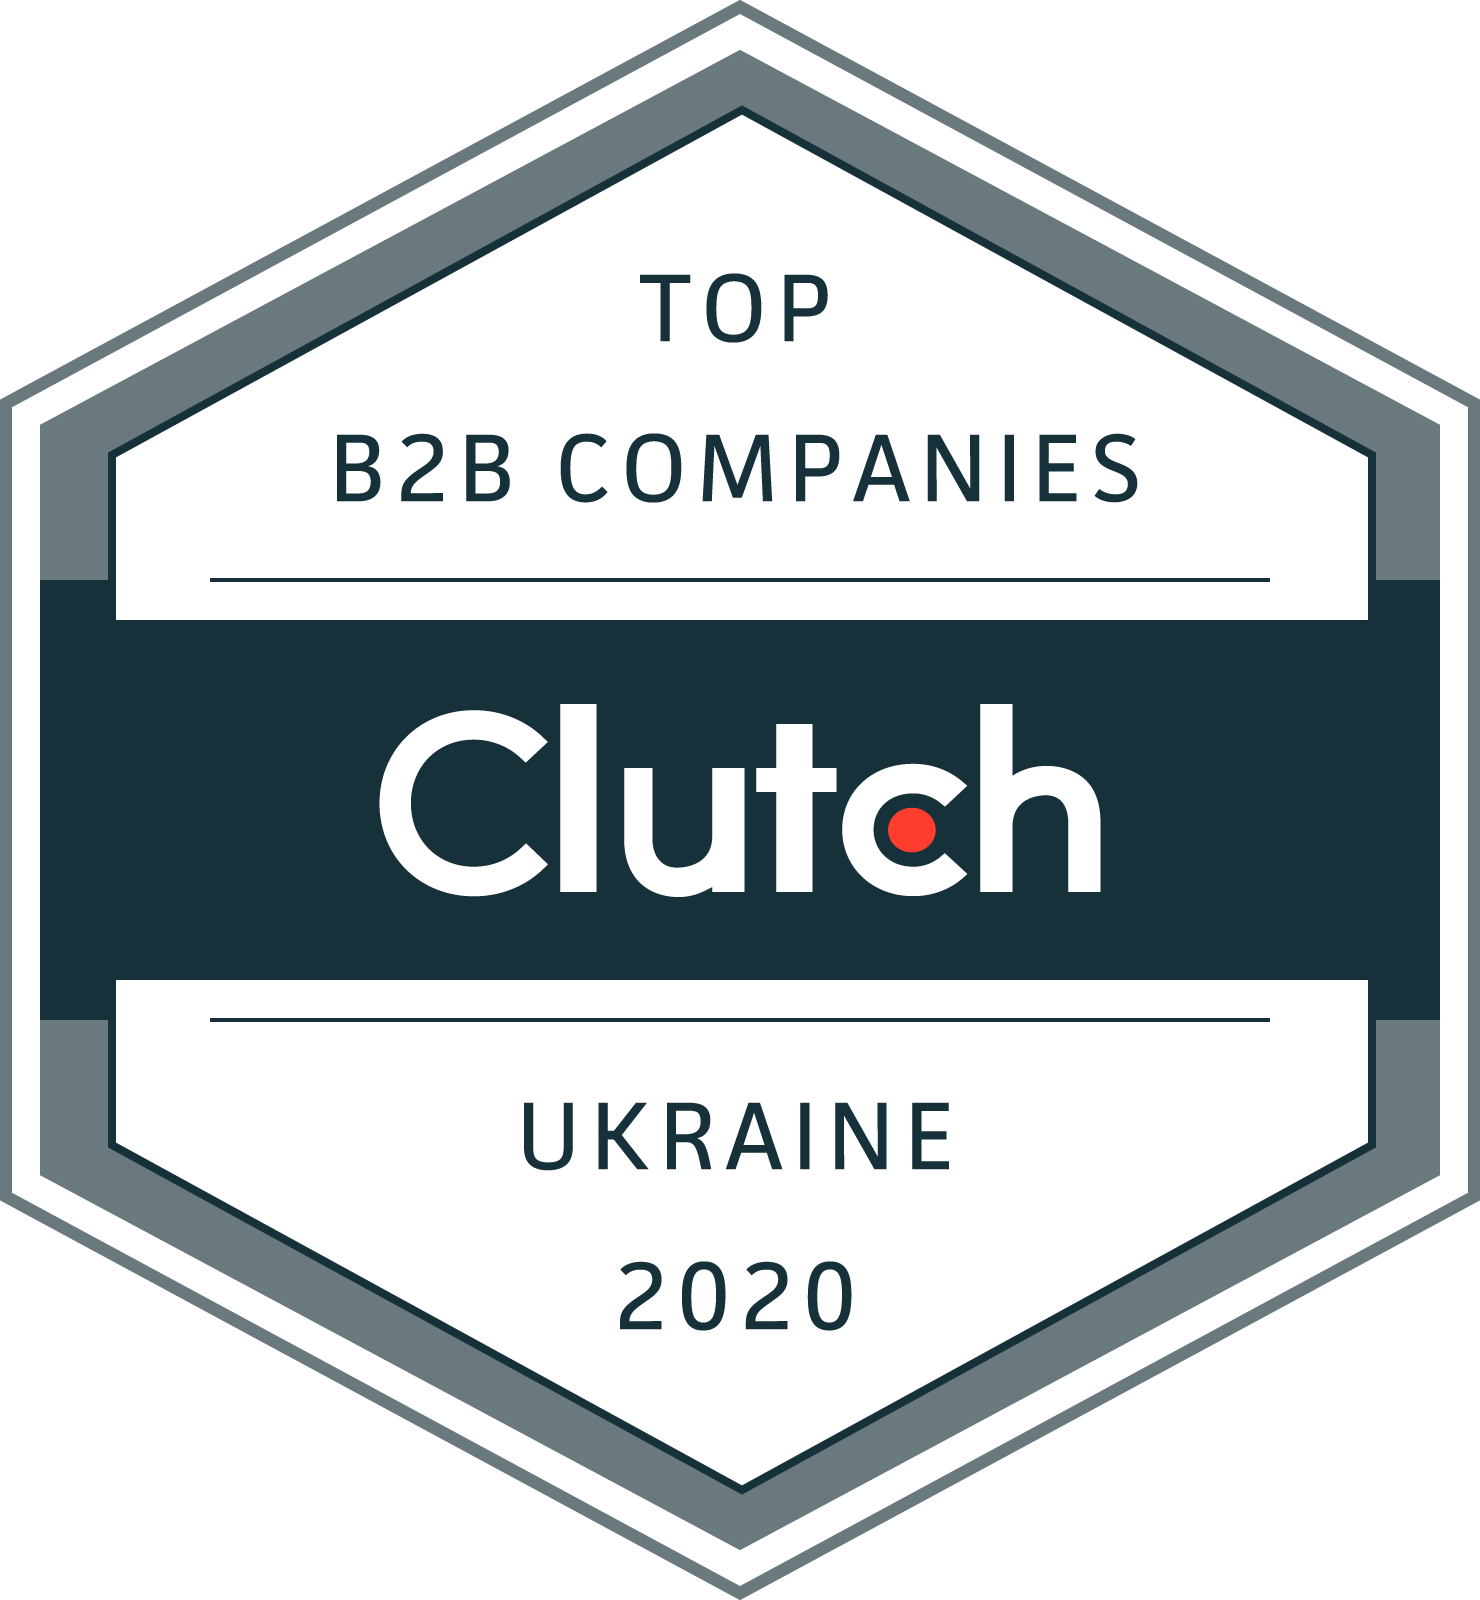 Clutch as amongst the Top E-Commerce Development